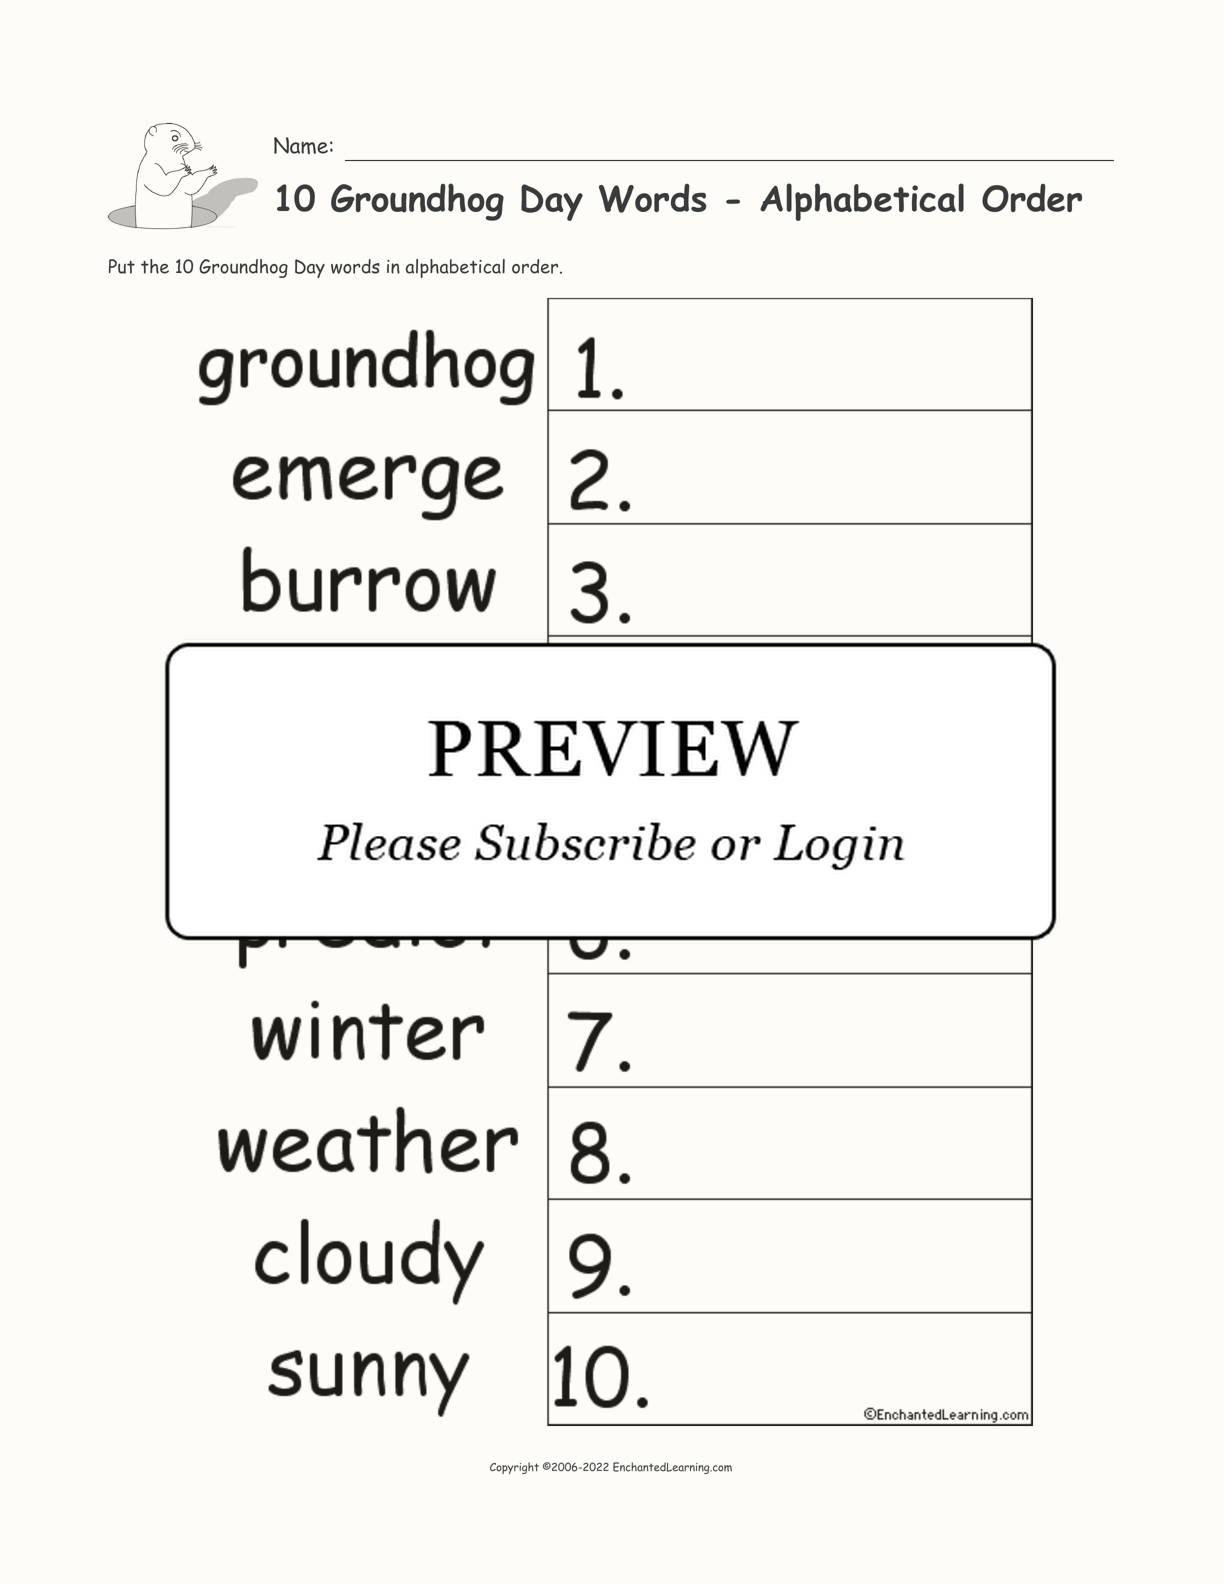 10 Groundhog Day Words - Alphabetical Order interactive worksheet page 1